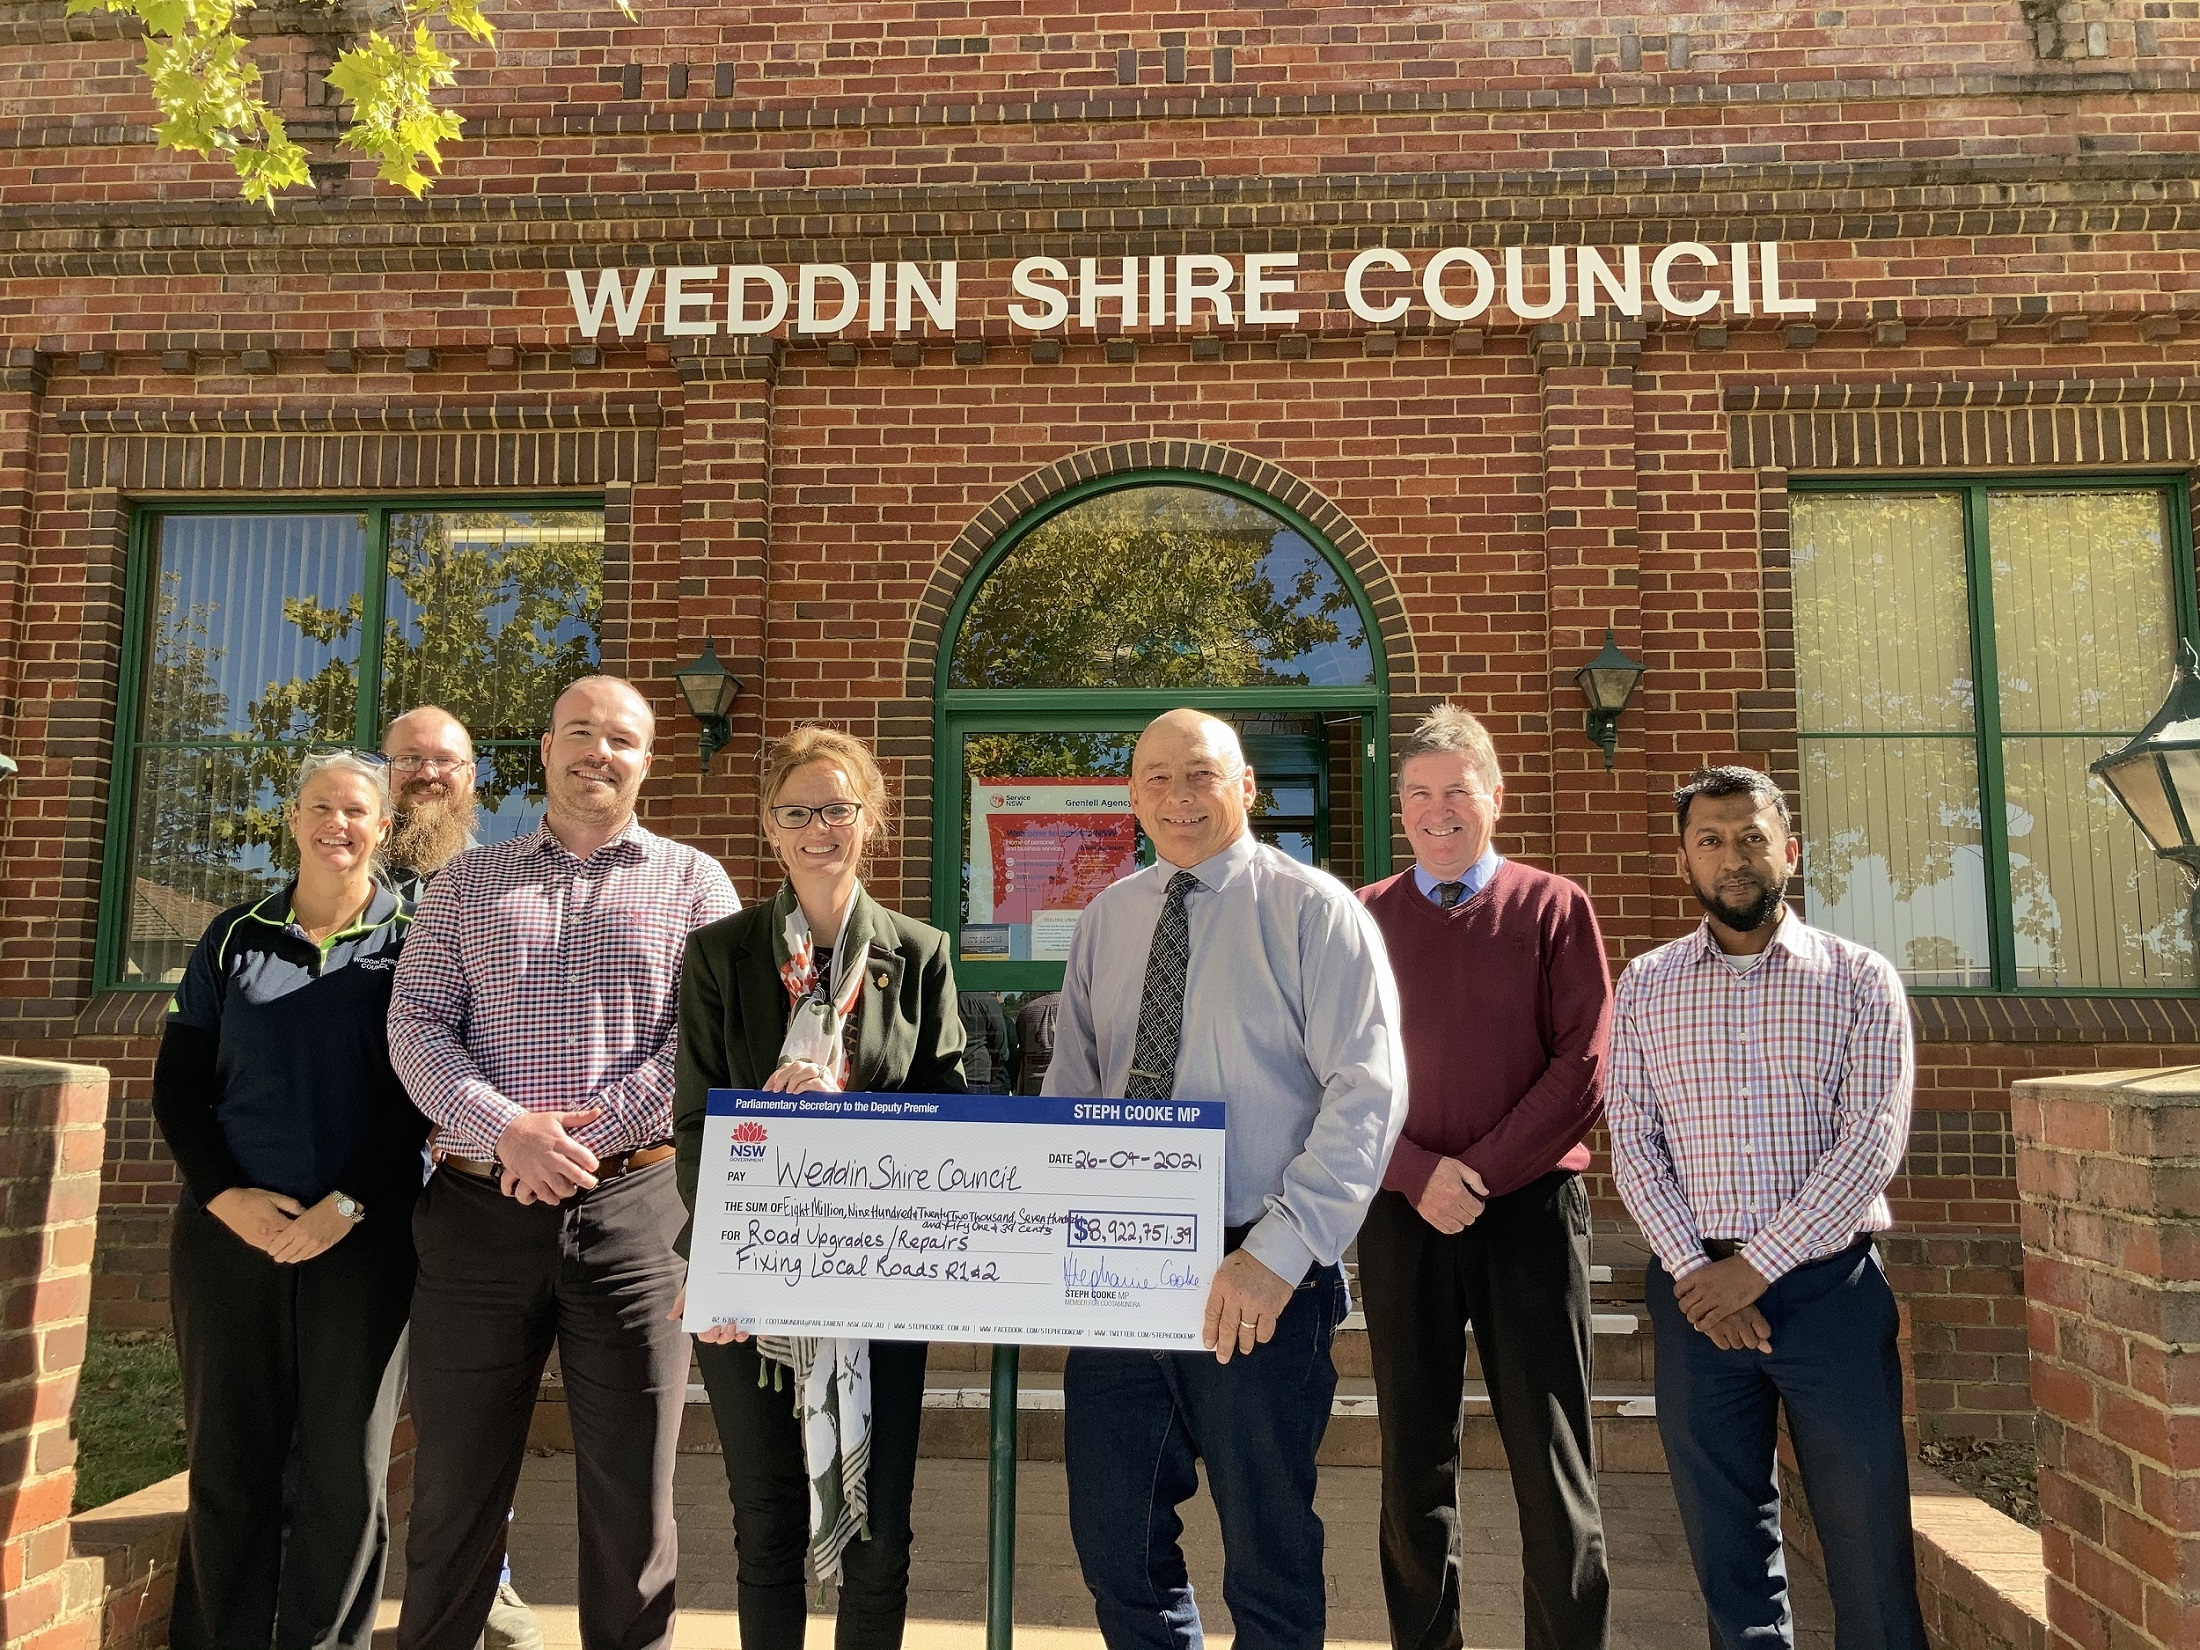 Linda Woods, Ross Garner, Jaymes Rath, Steph Cooke MP, Mark Liebich, Glenn Carroll and Raihan Rafiq hold a large cheque and stand under a sign reading 'Weddin Council Chambers'.